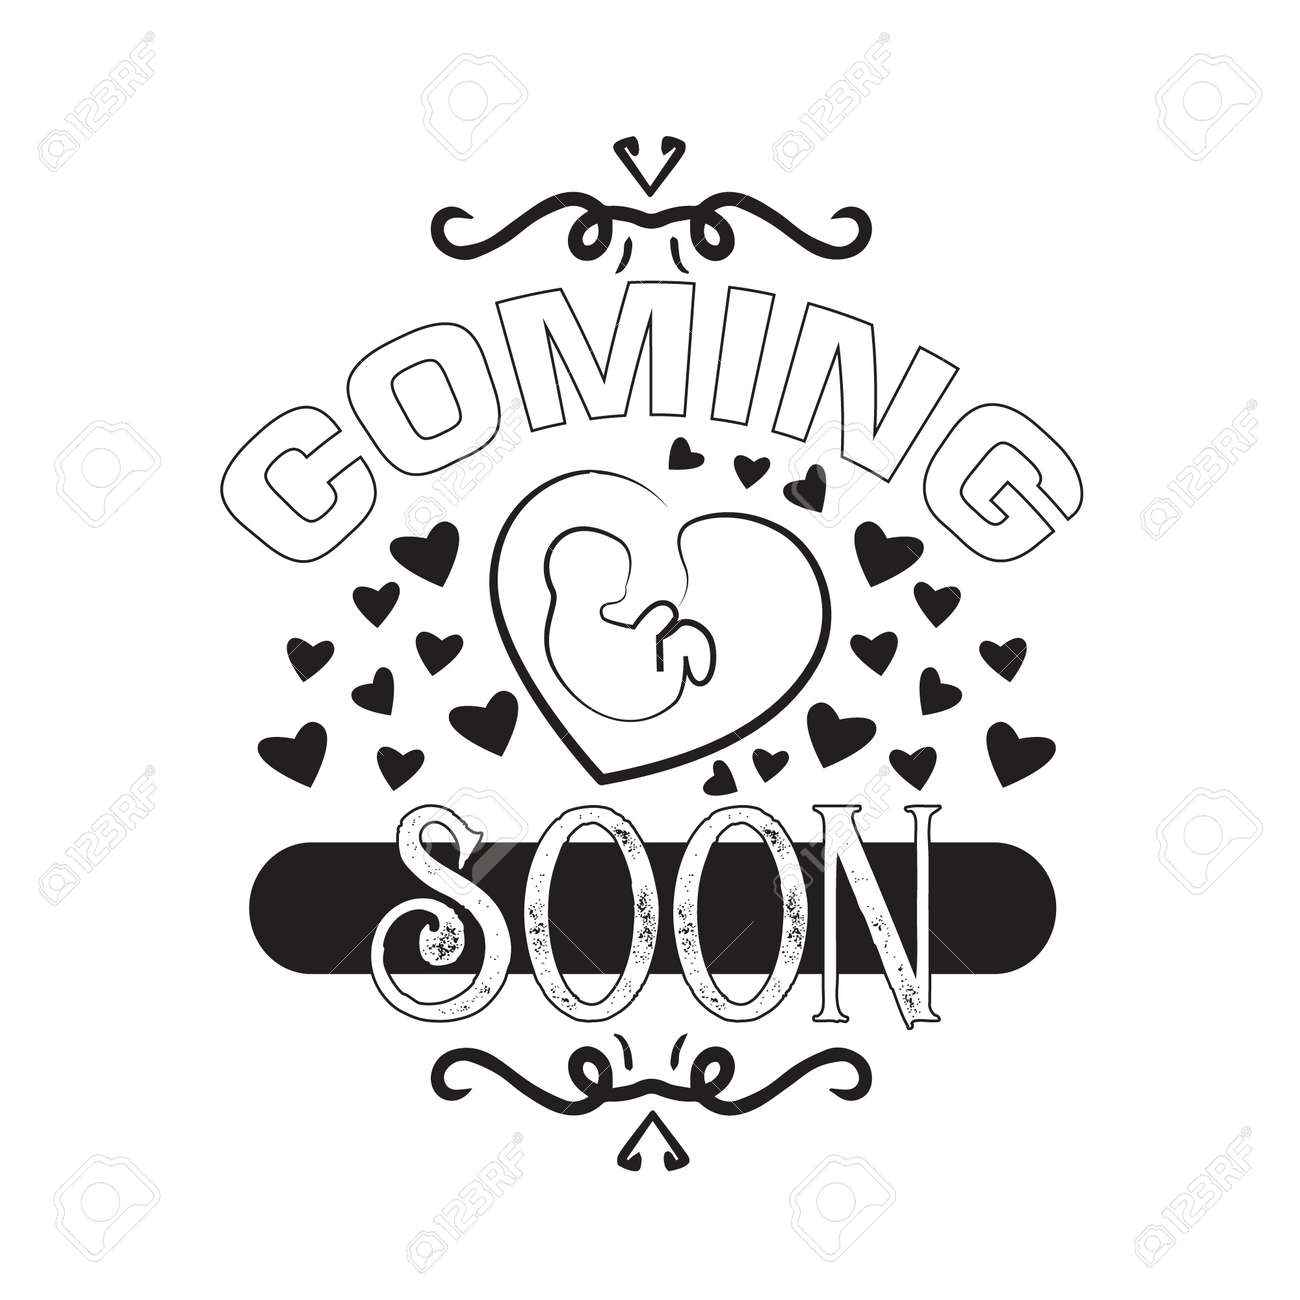 Pregnant Quote And Saying Baby Coming Soon Royalty Free Cliparts Vectors And Stock Illustration Image 157981351